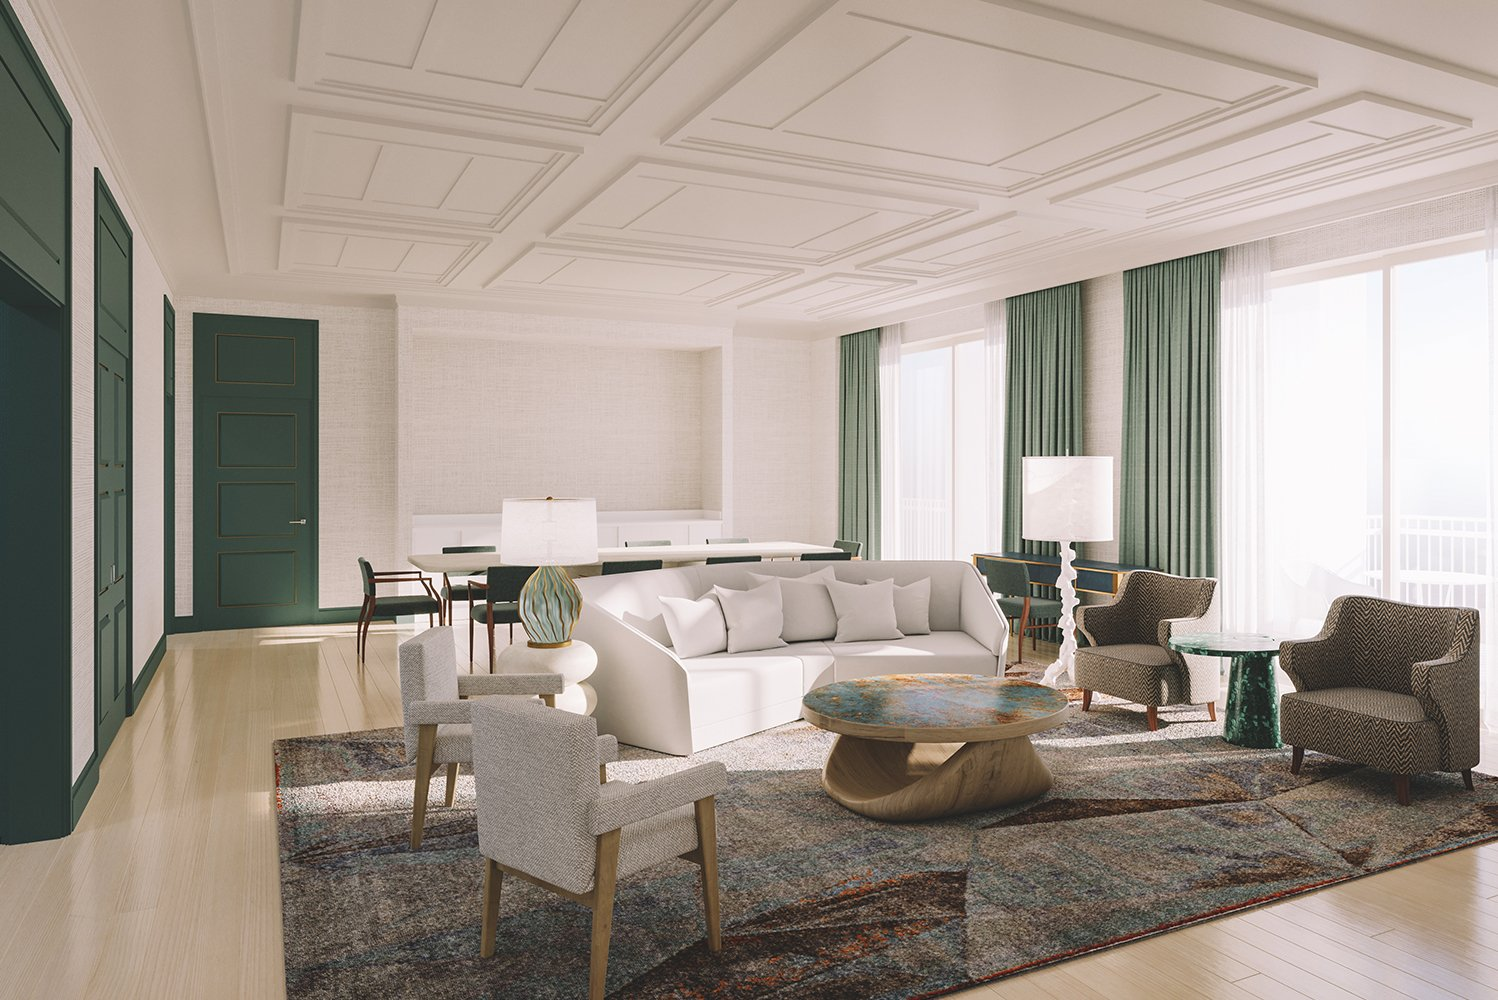 Interior design is led by design studio Champalimaud.